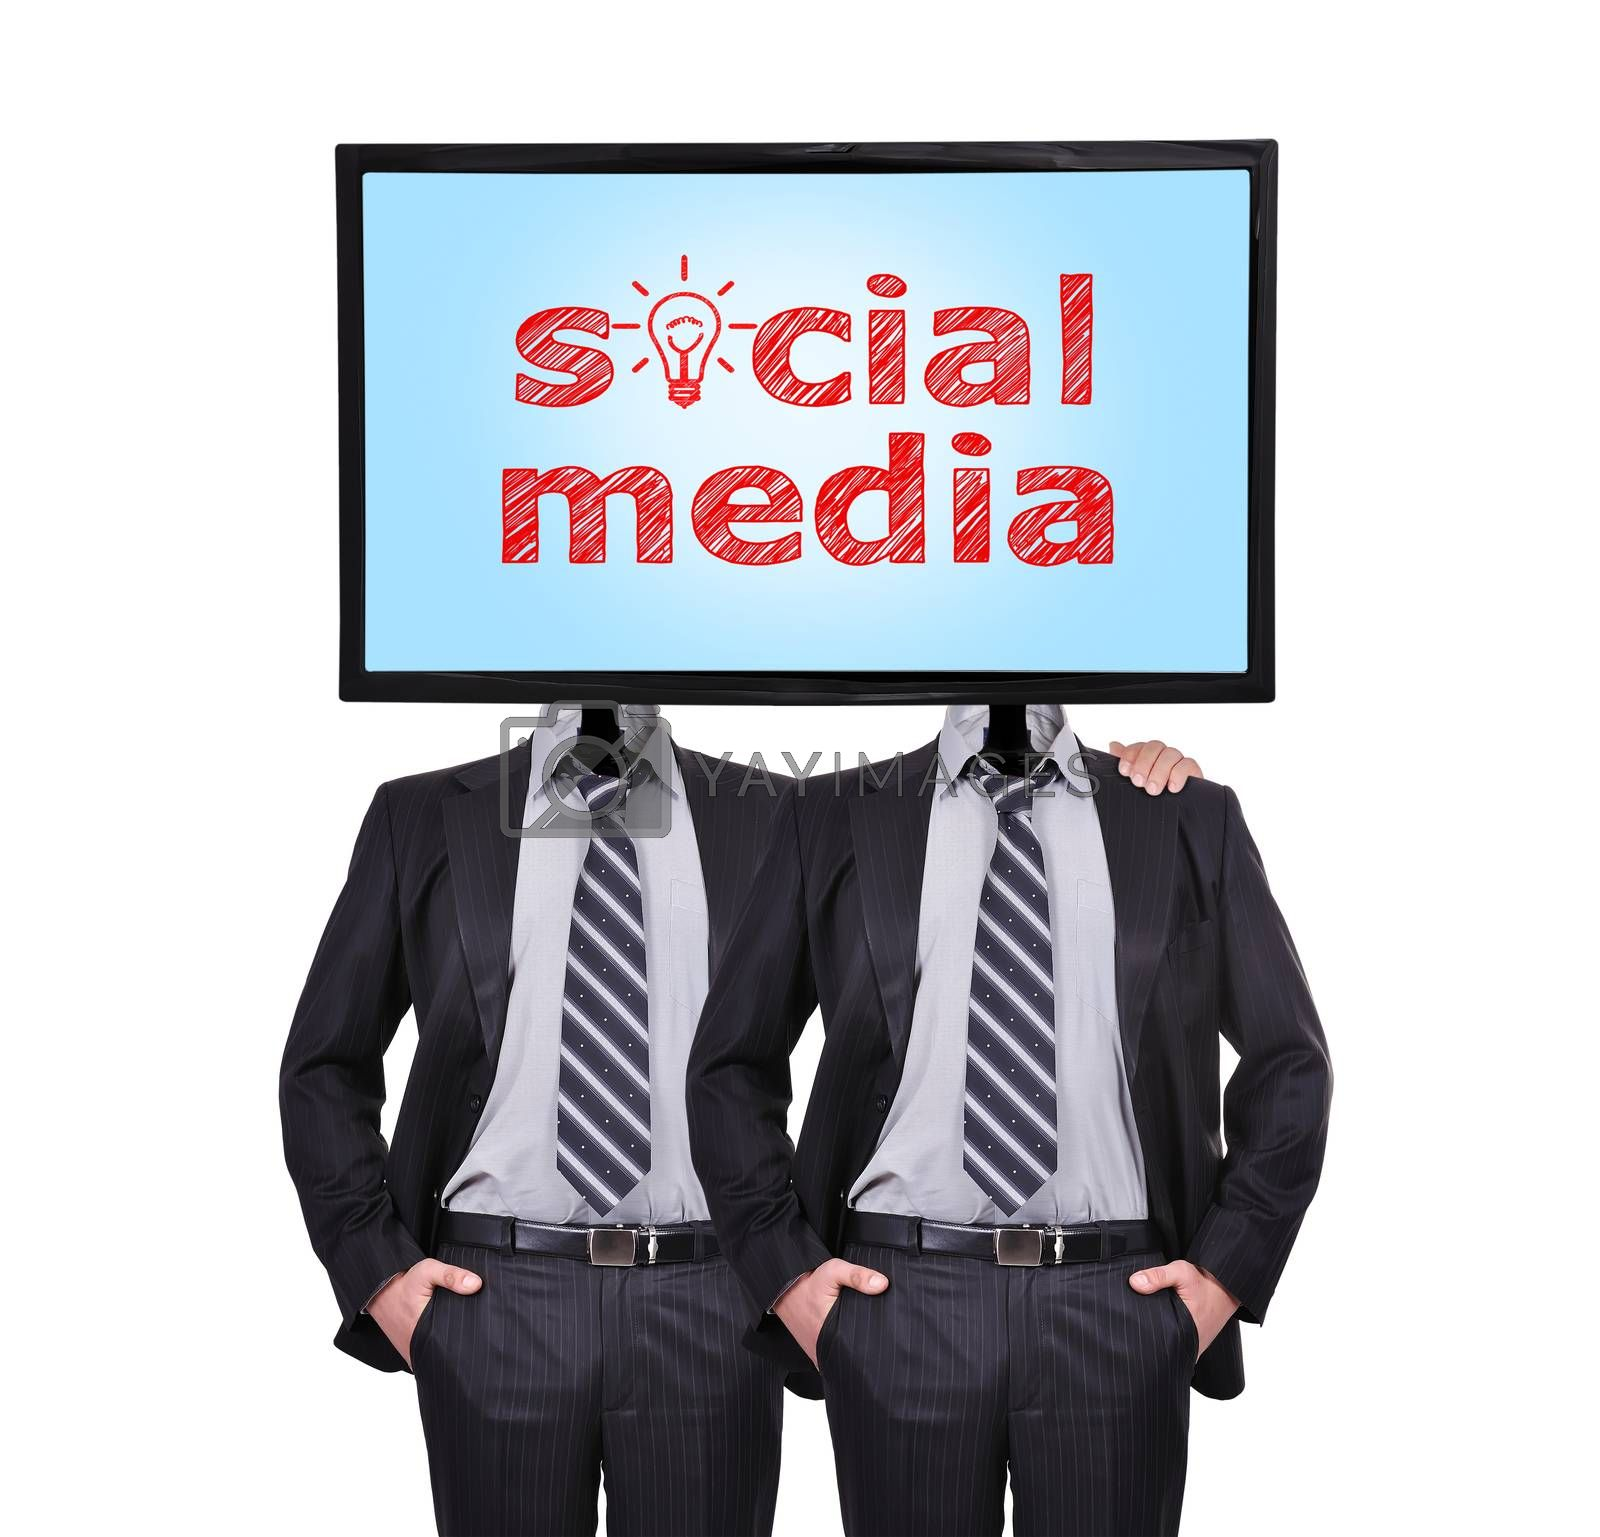 two businessmen with a monitor for a head, social media concept